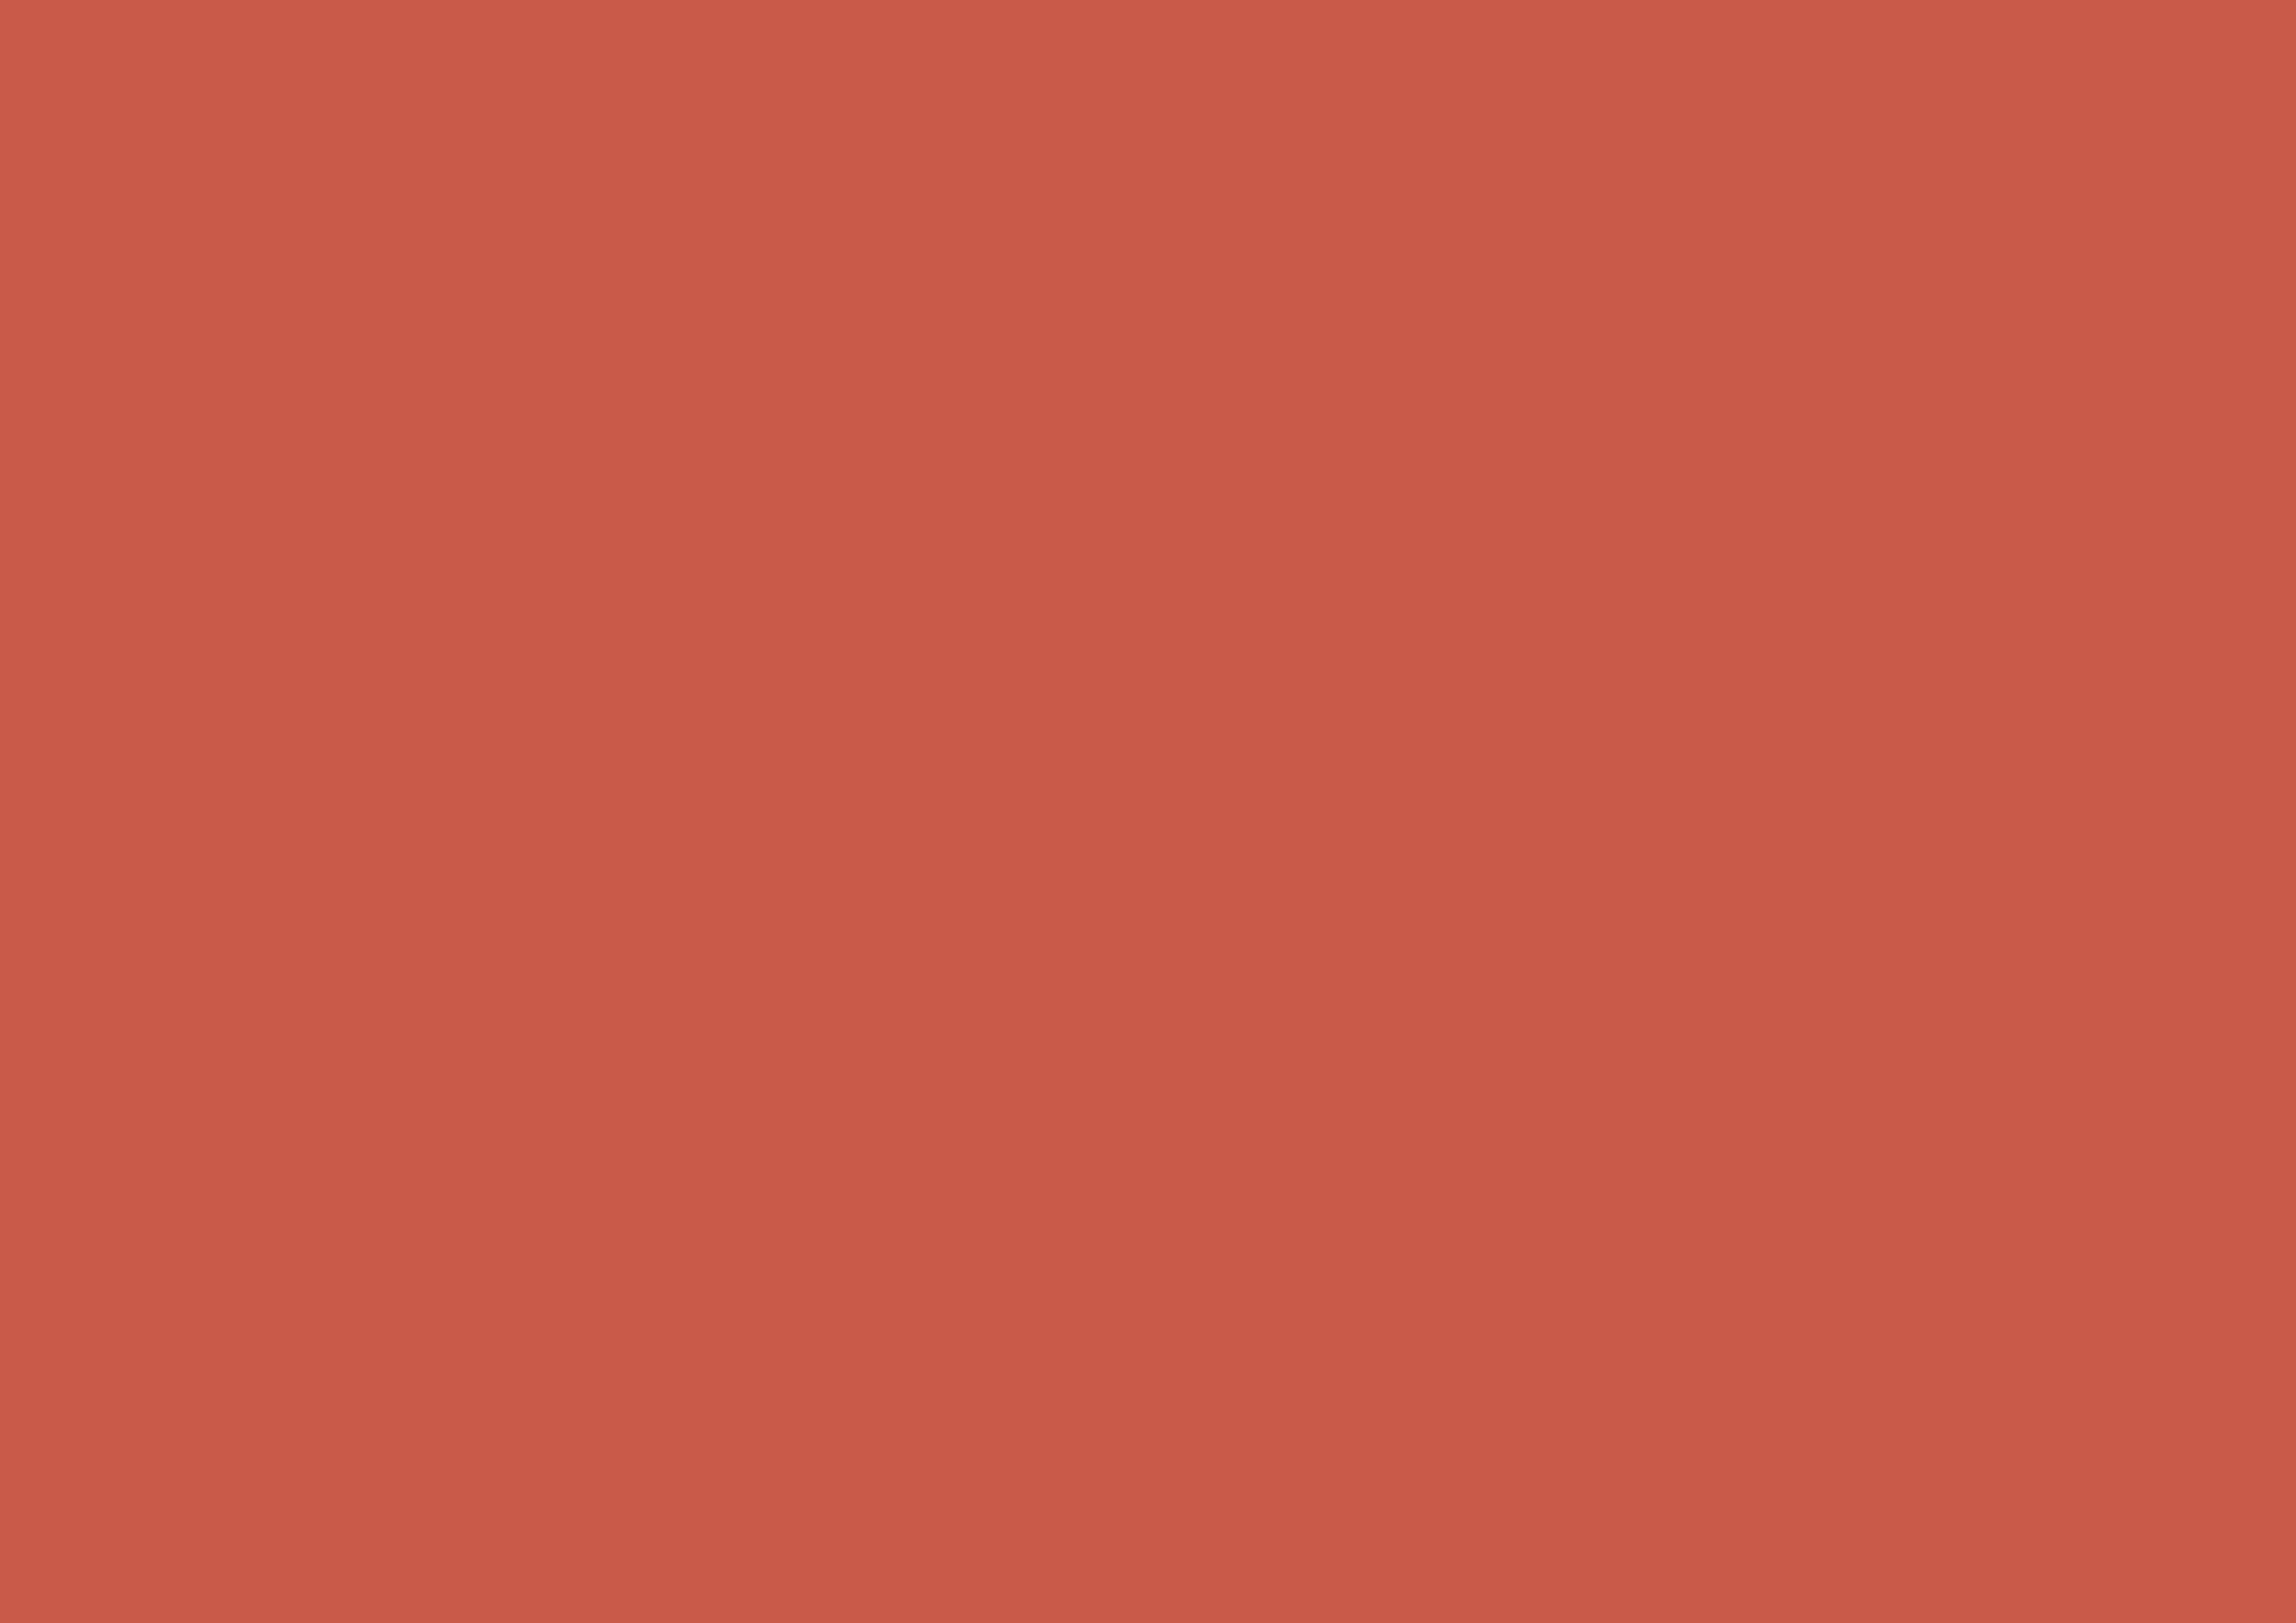 3508x2480 Cedar Chest Solid Color Background